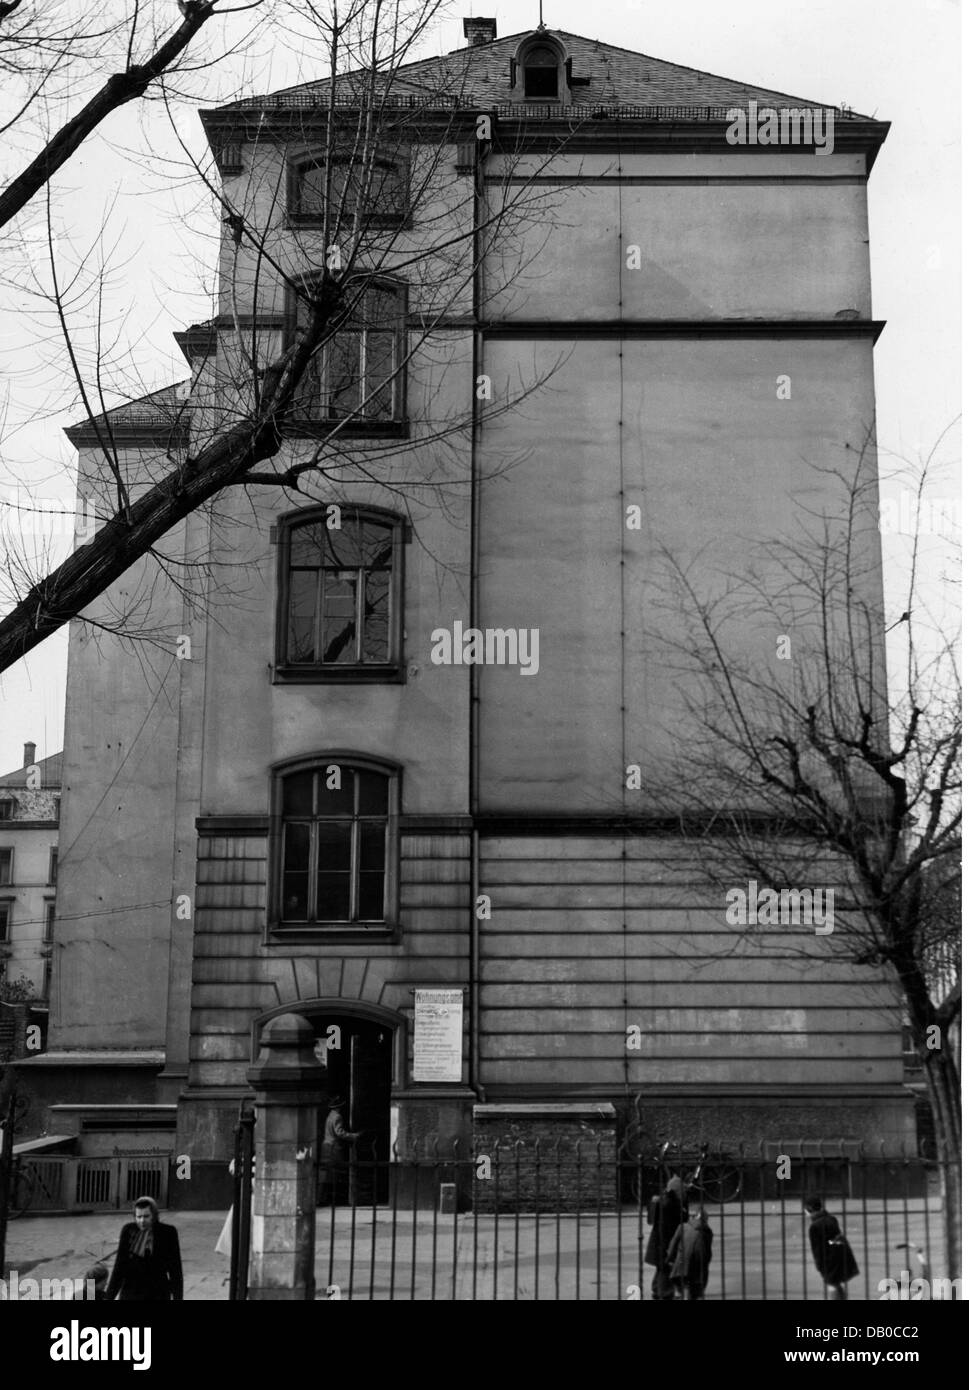 post war period, misery and hardship, Germany, housing shortage, housing office, Frankfurt am Main, exterior view, - Stock Image